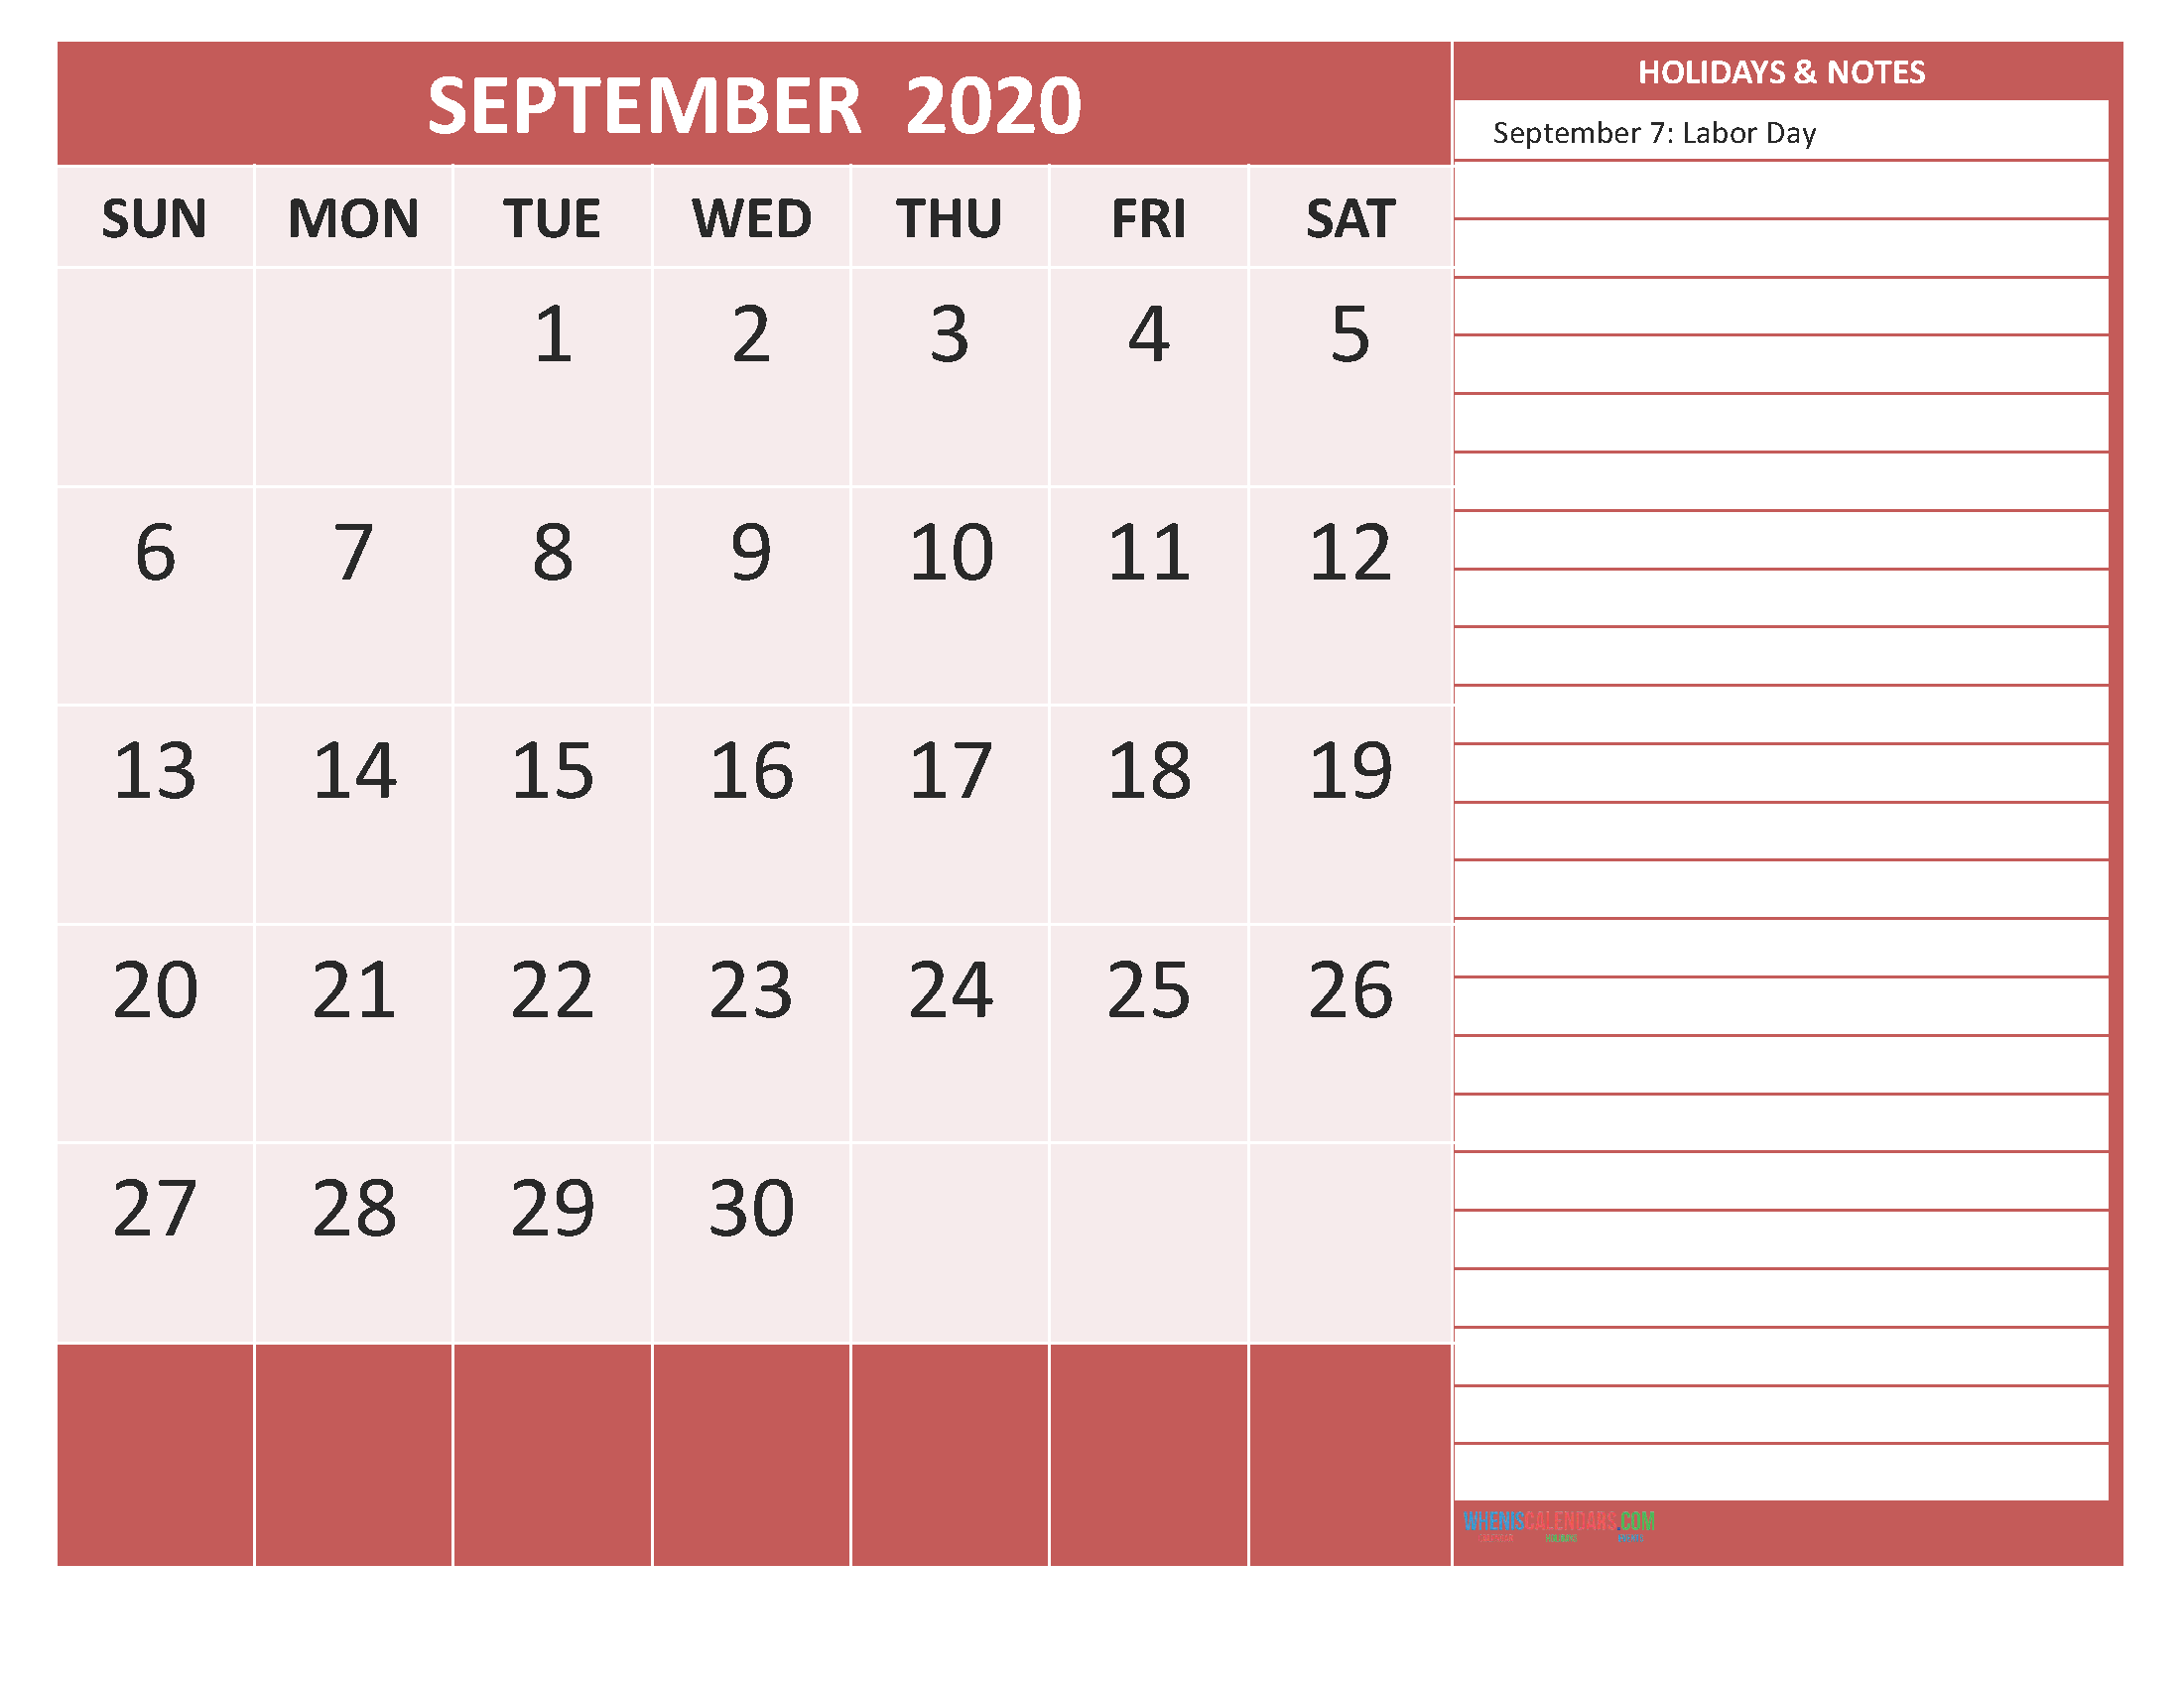 Free Printable Monthly Calendar 2020 September with Holidays